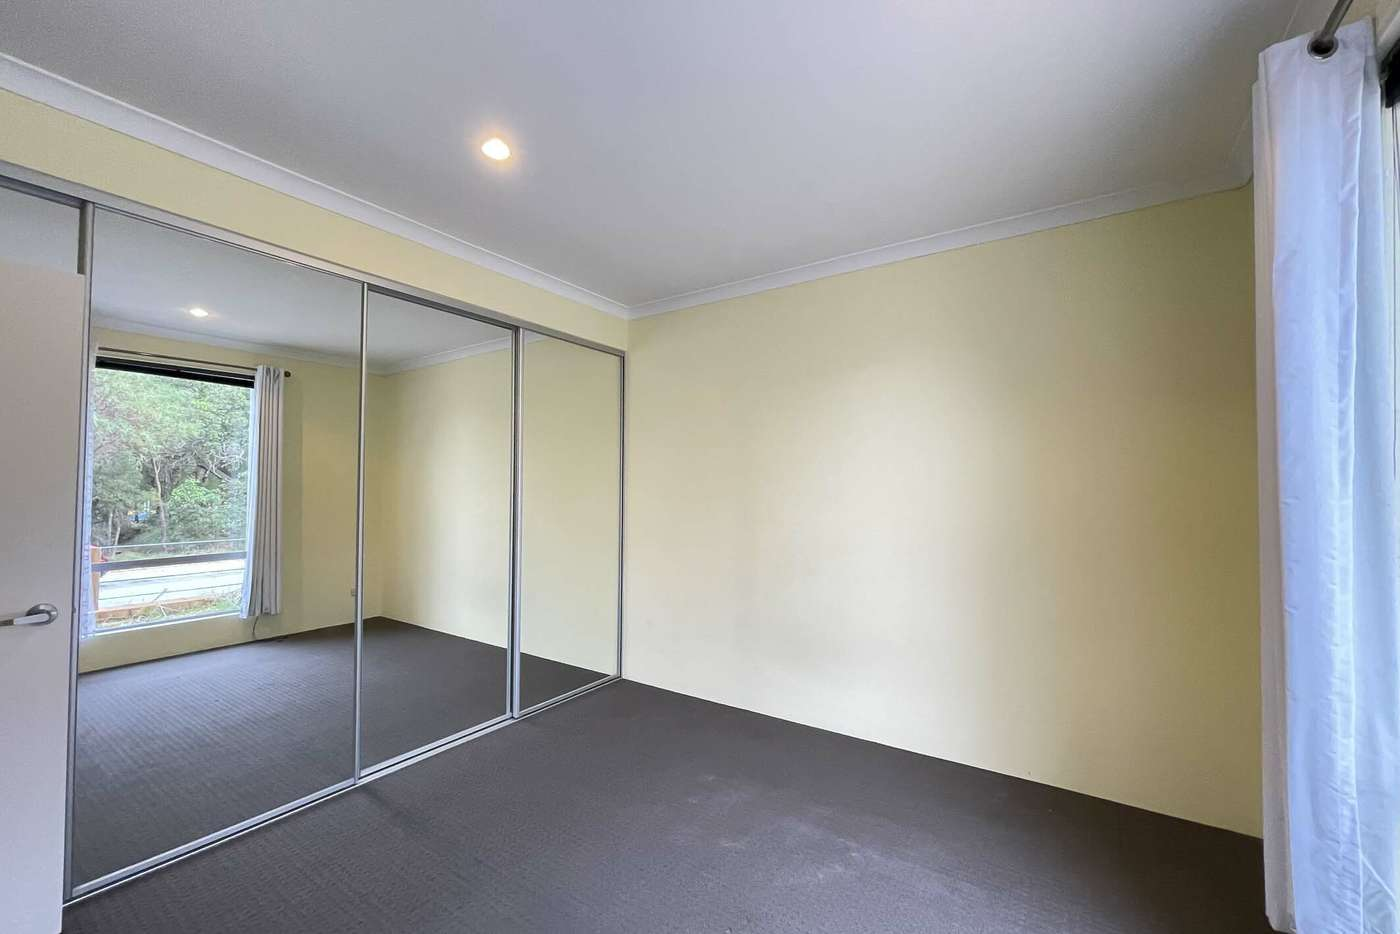 Sixth view of Homely house listing, 57 Stanbury Crescent, Ellenbrook WA 6069